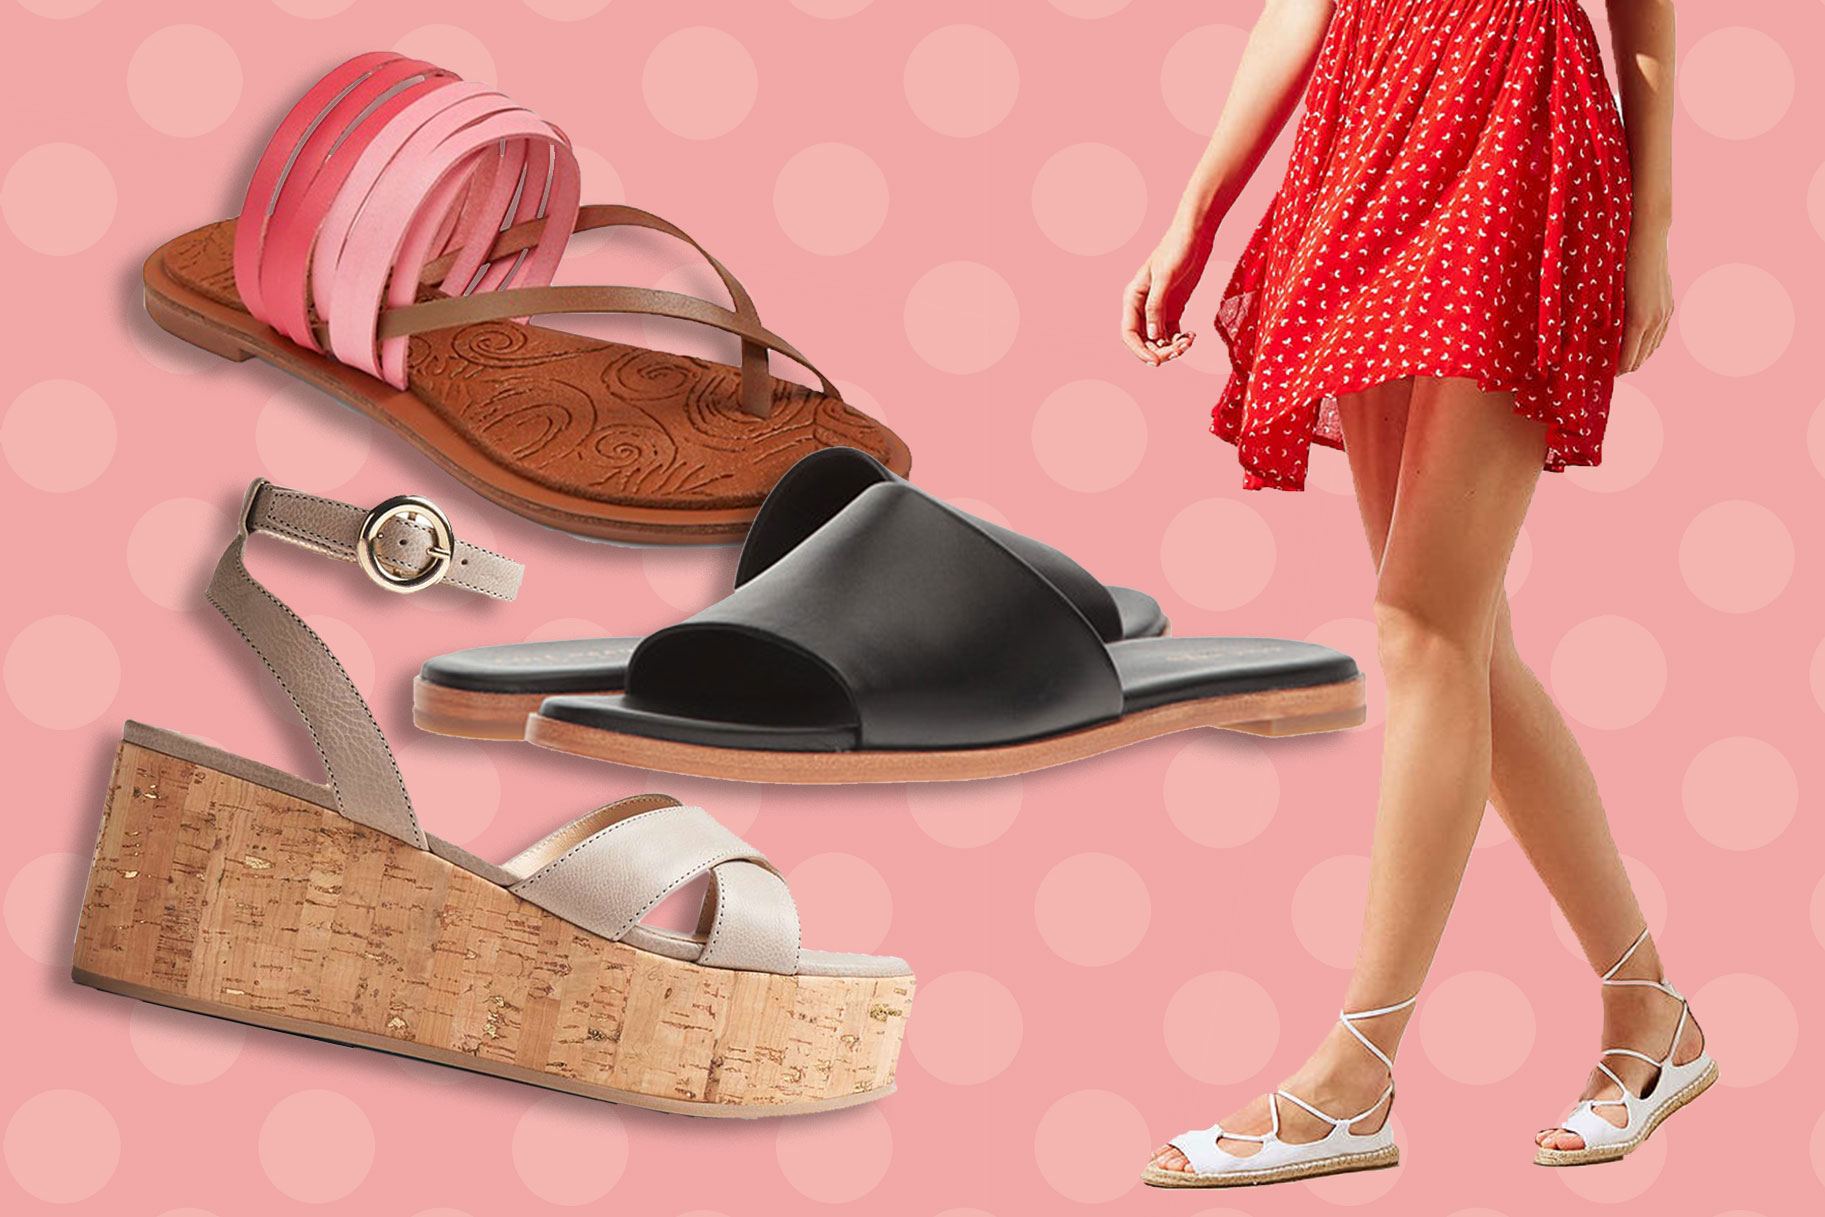 9ed5e0fc8b Say This 5 Times Fast: 16 Summer Sandals on Sale